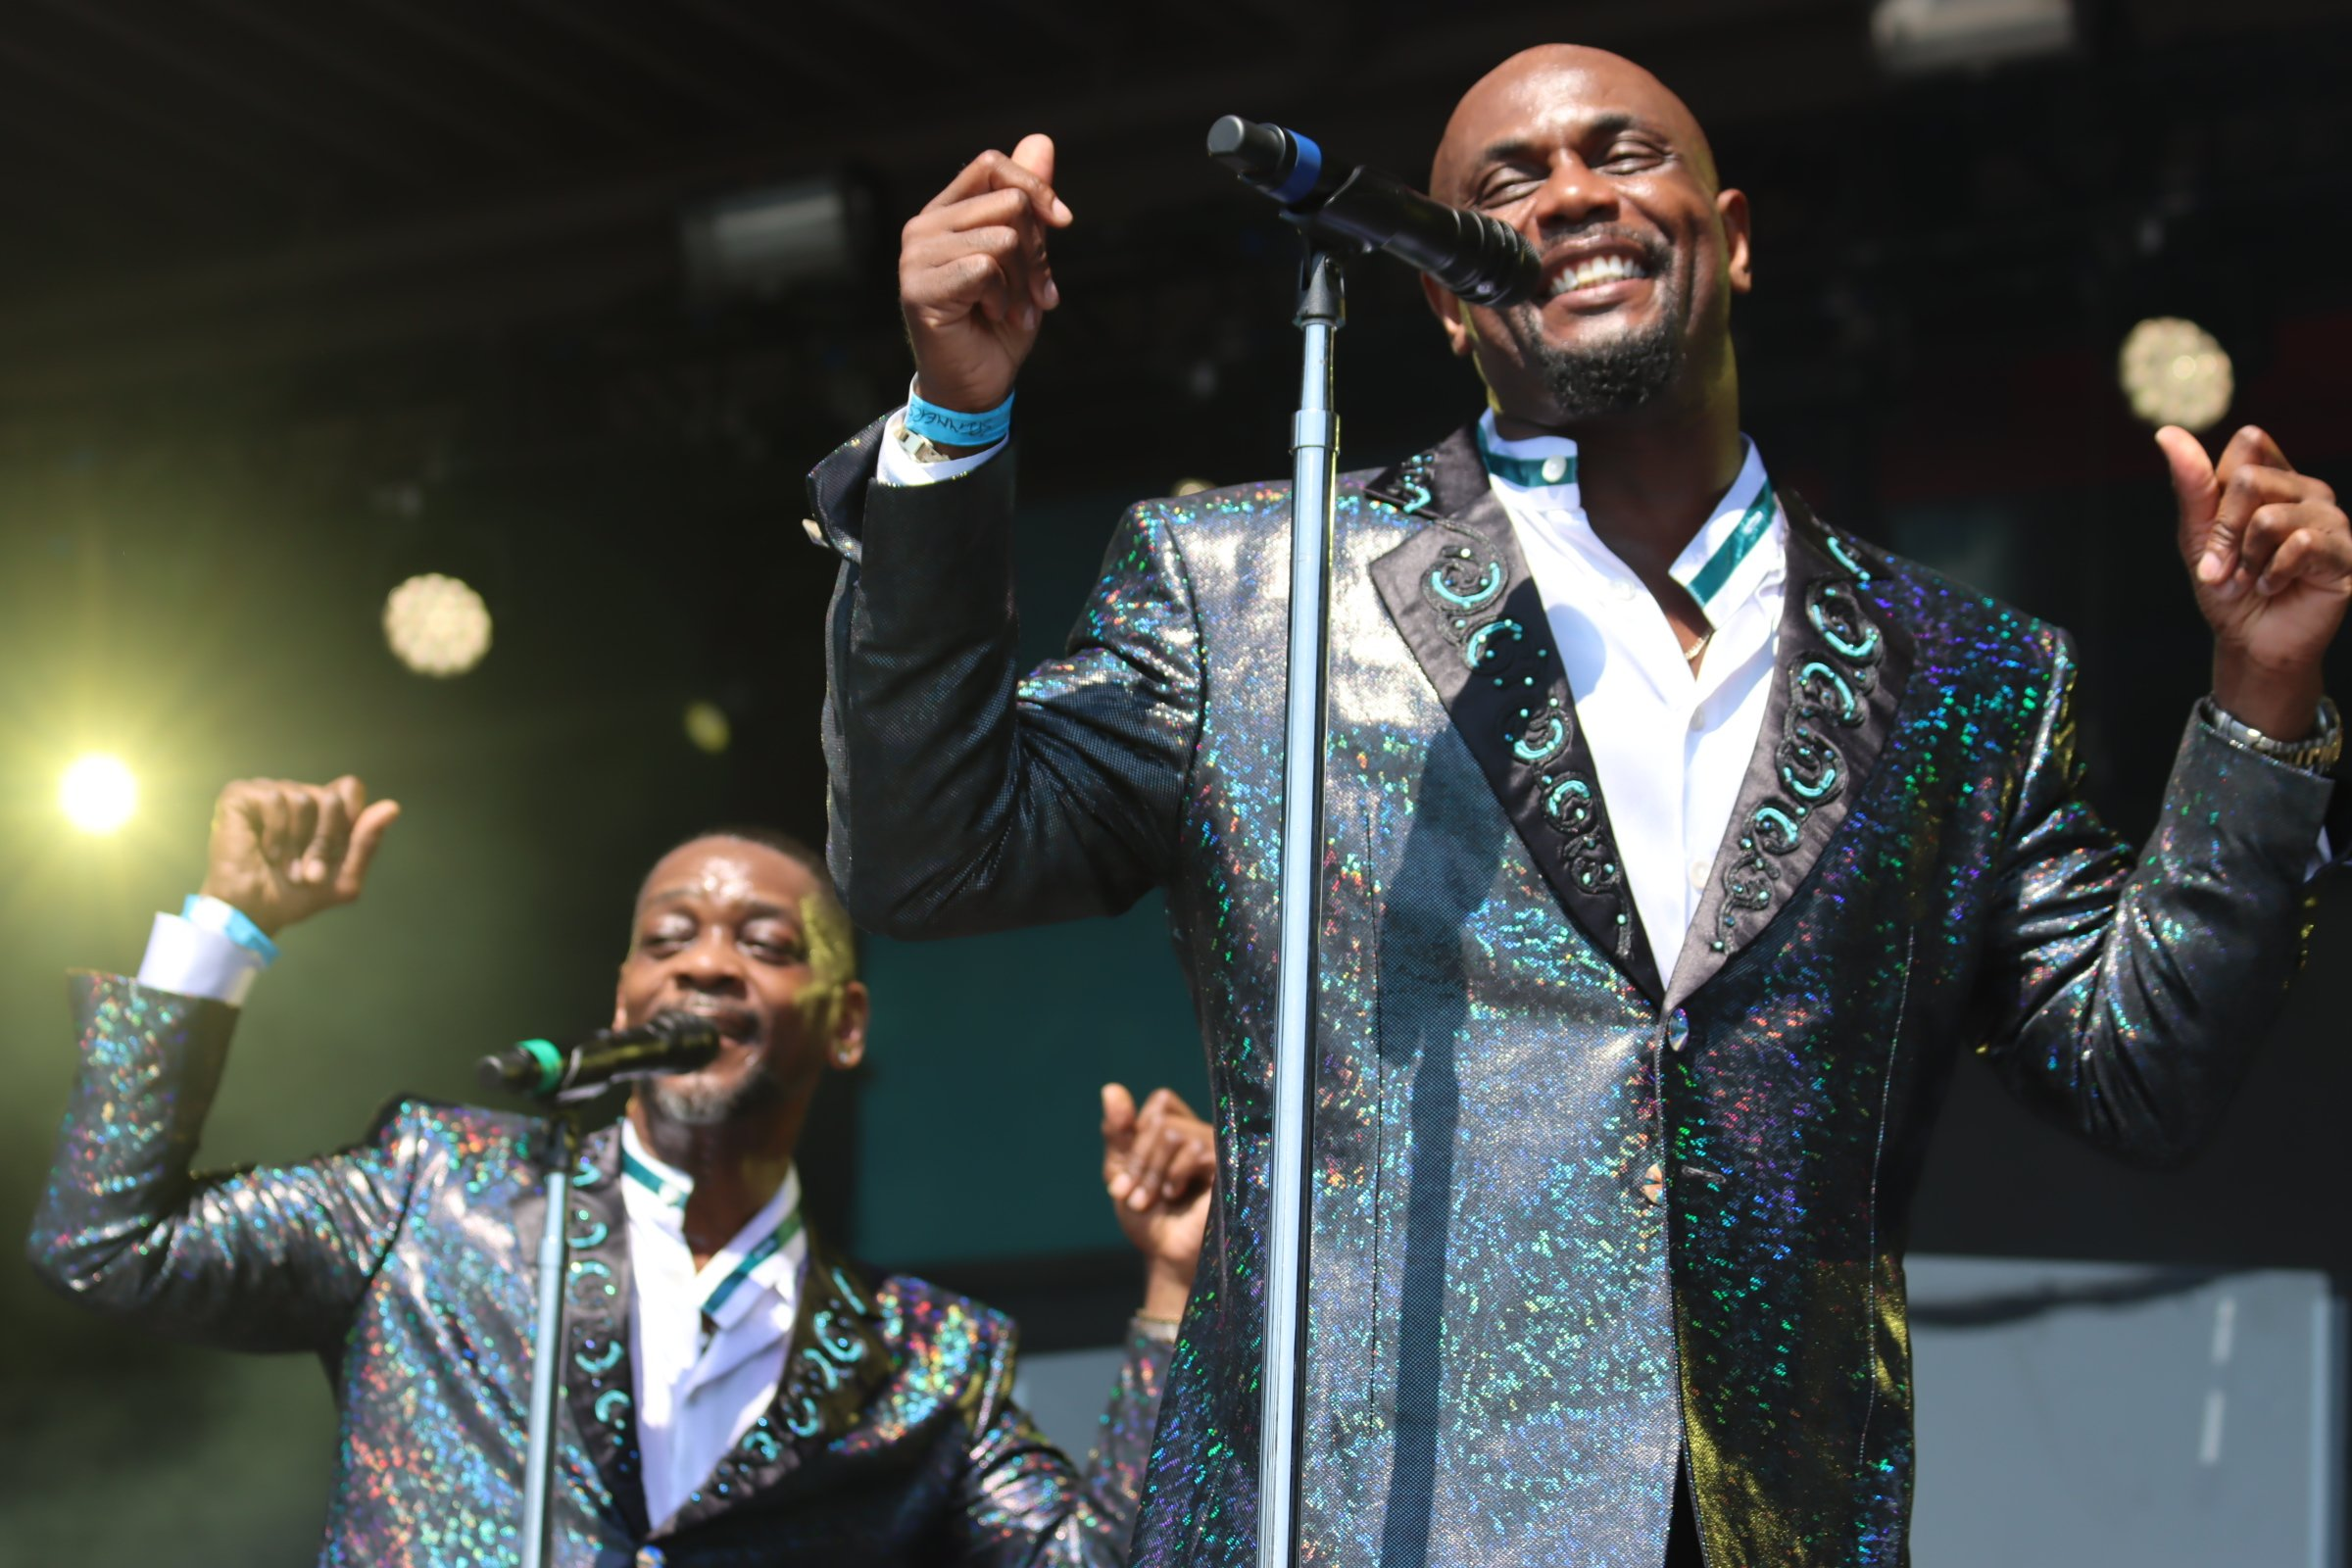 Jessie and CJ from The Spinners energetically performing at the New York State Fair in blue metallic tuxes